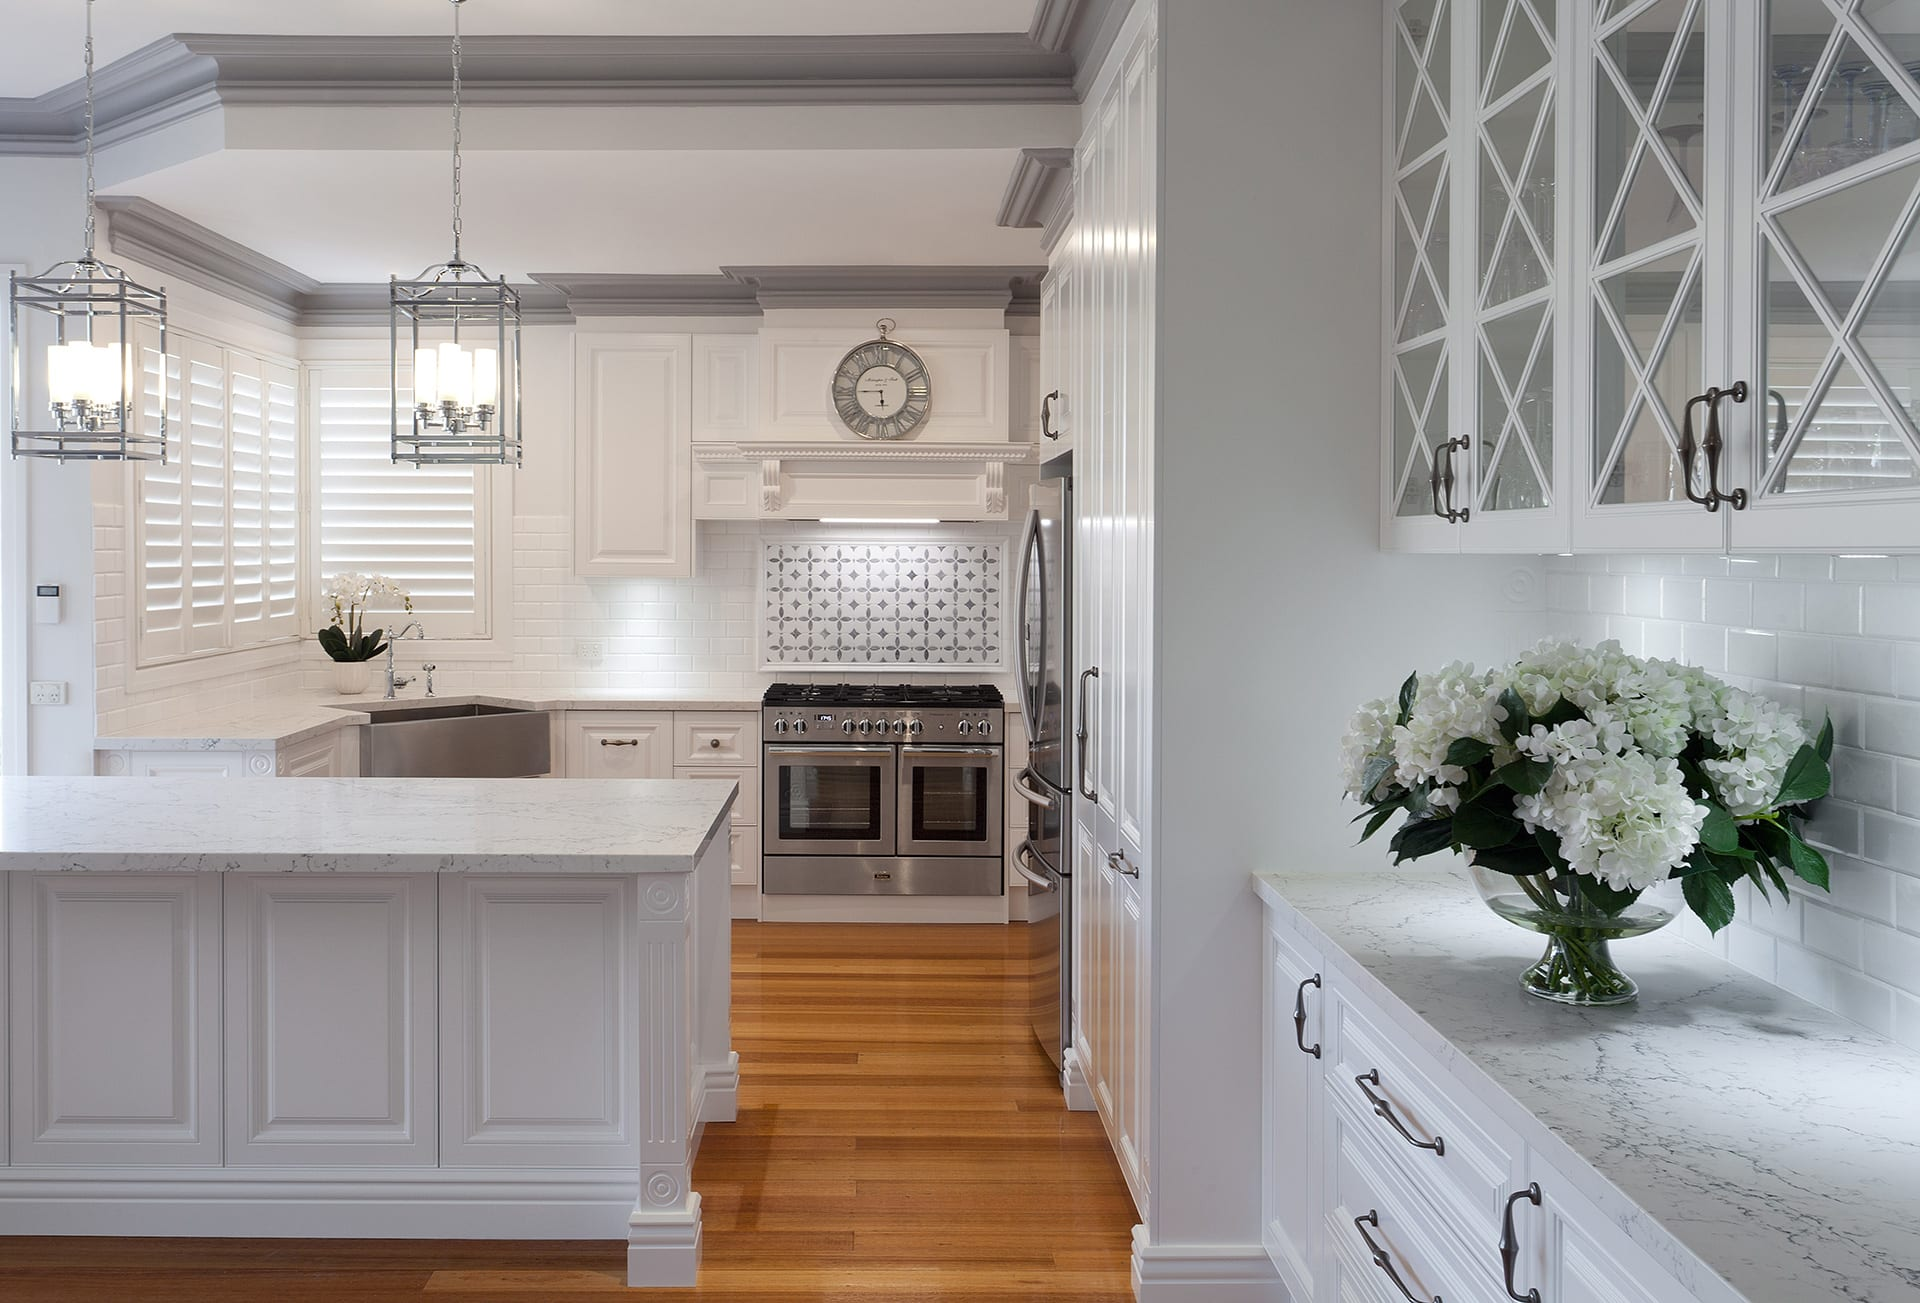 French Provincial Kitchens - Direct Kitchens